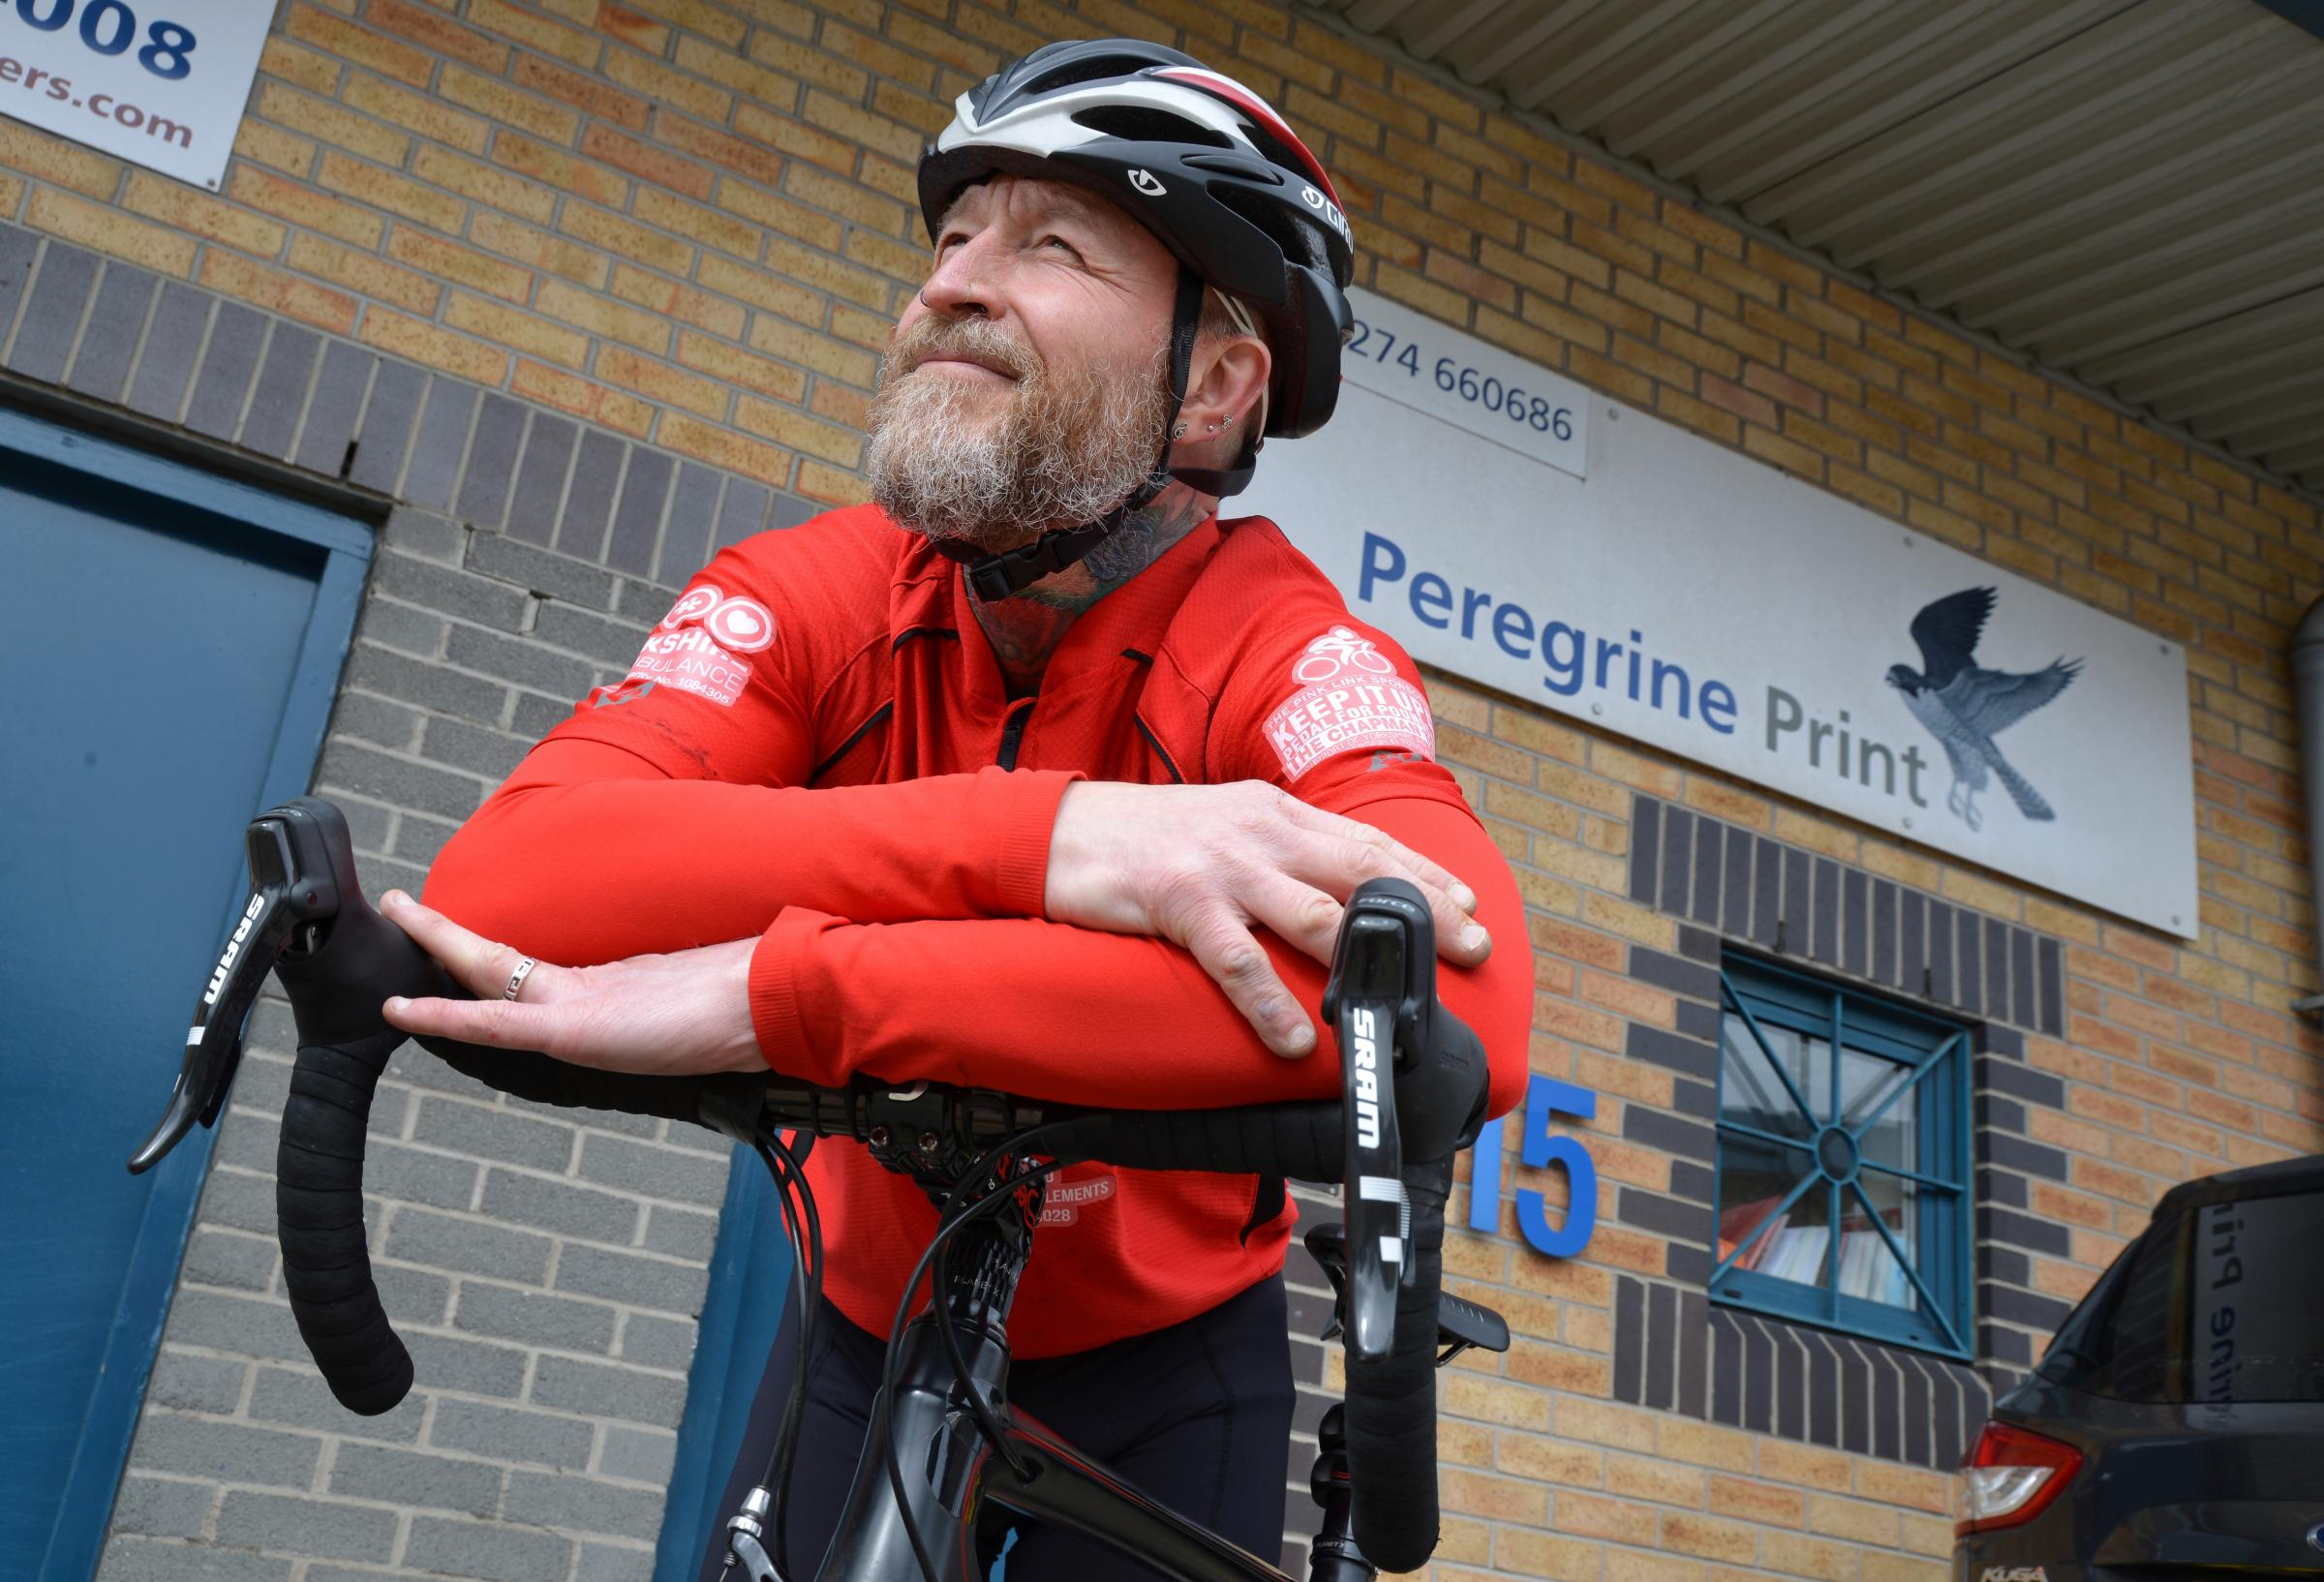 : Mark Cunningham is taking part in a charity bike ride in May from Huddersfield to Dortmund in aid of Yorkshire Air Ambulance.